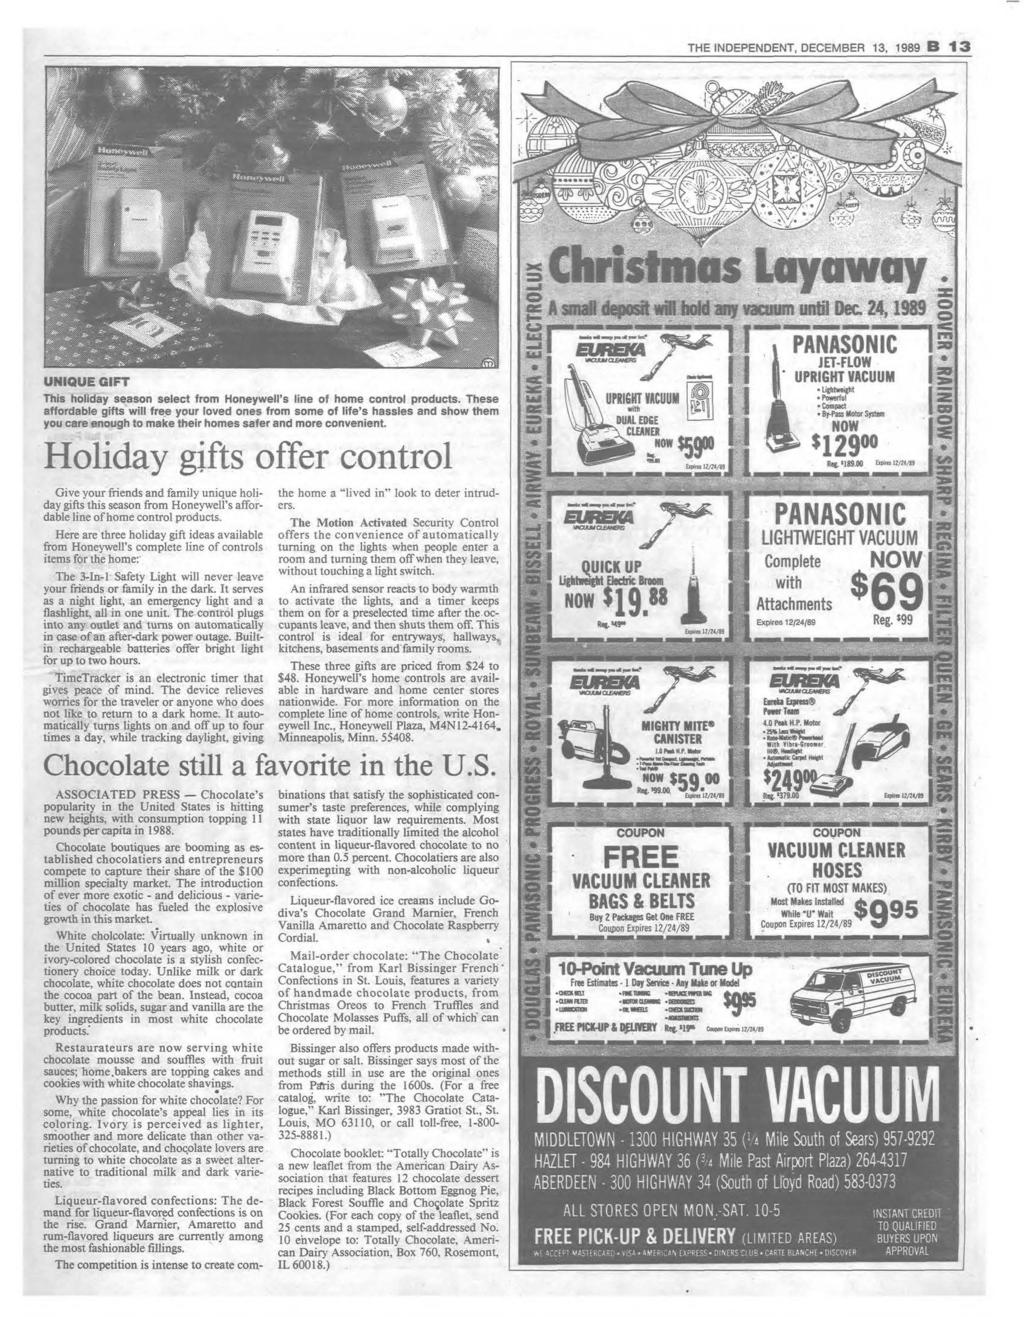 THE INDEPENDENT, DECEM BER 13, 1989 B 1 3 C h r is tm a s L a y a w a y A small deposit will hold any vacuum until Bee, 24,1989 UNIQUE GIFT This holiday season select from Honeywell s line of home